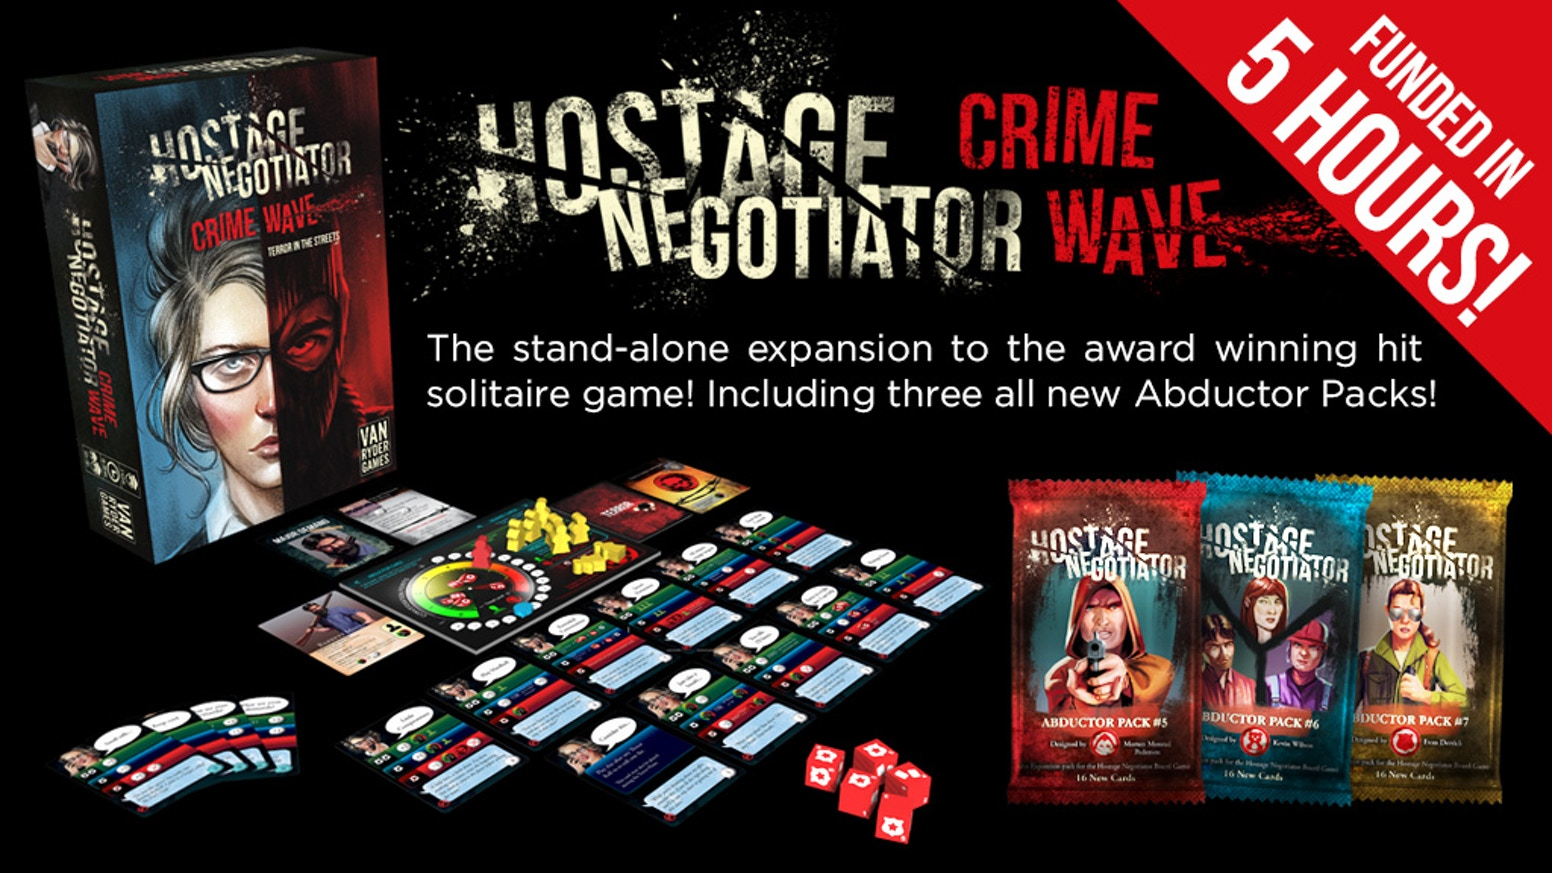 Hostage Negotiator: Crime Wave is a stand alone expansion to the hit solitaire game, Hostage Negotiator.